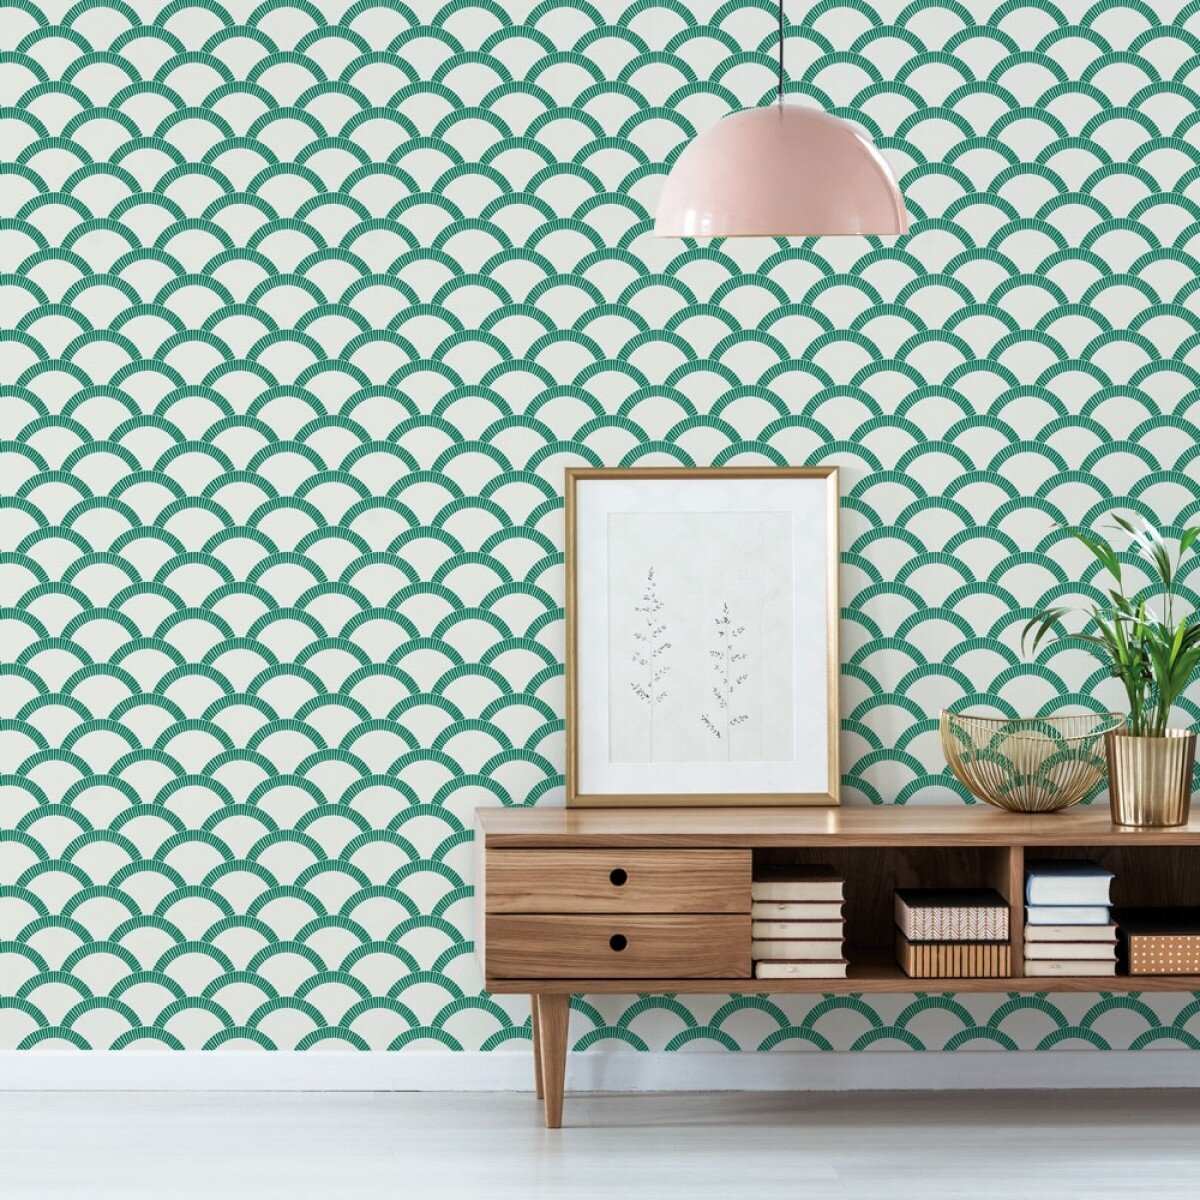 24 Gorgeous Wallpaper Designs to Transform Your Space | Real ...